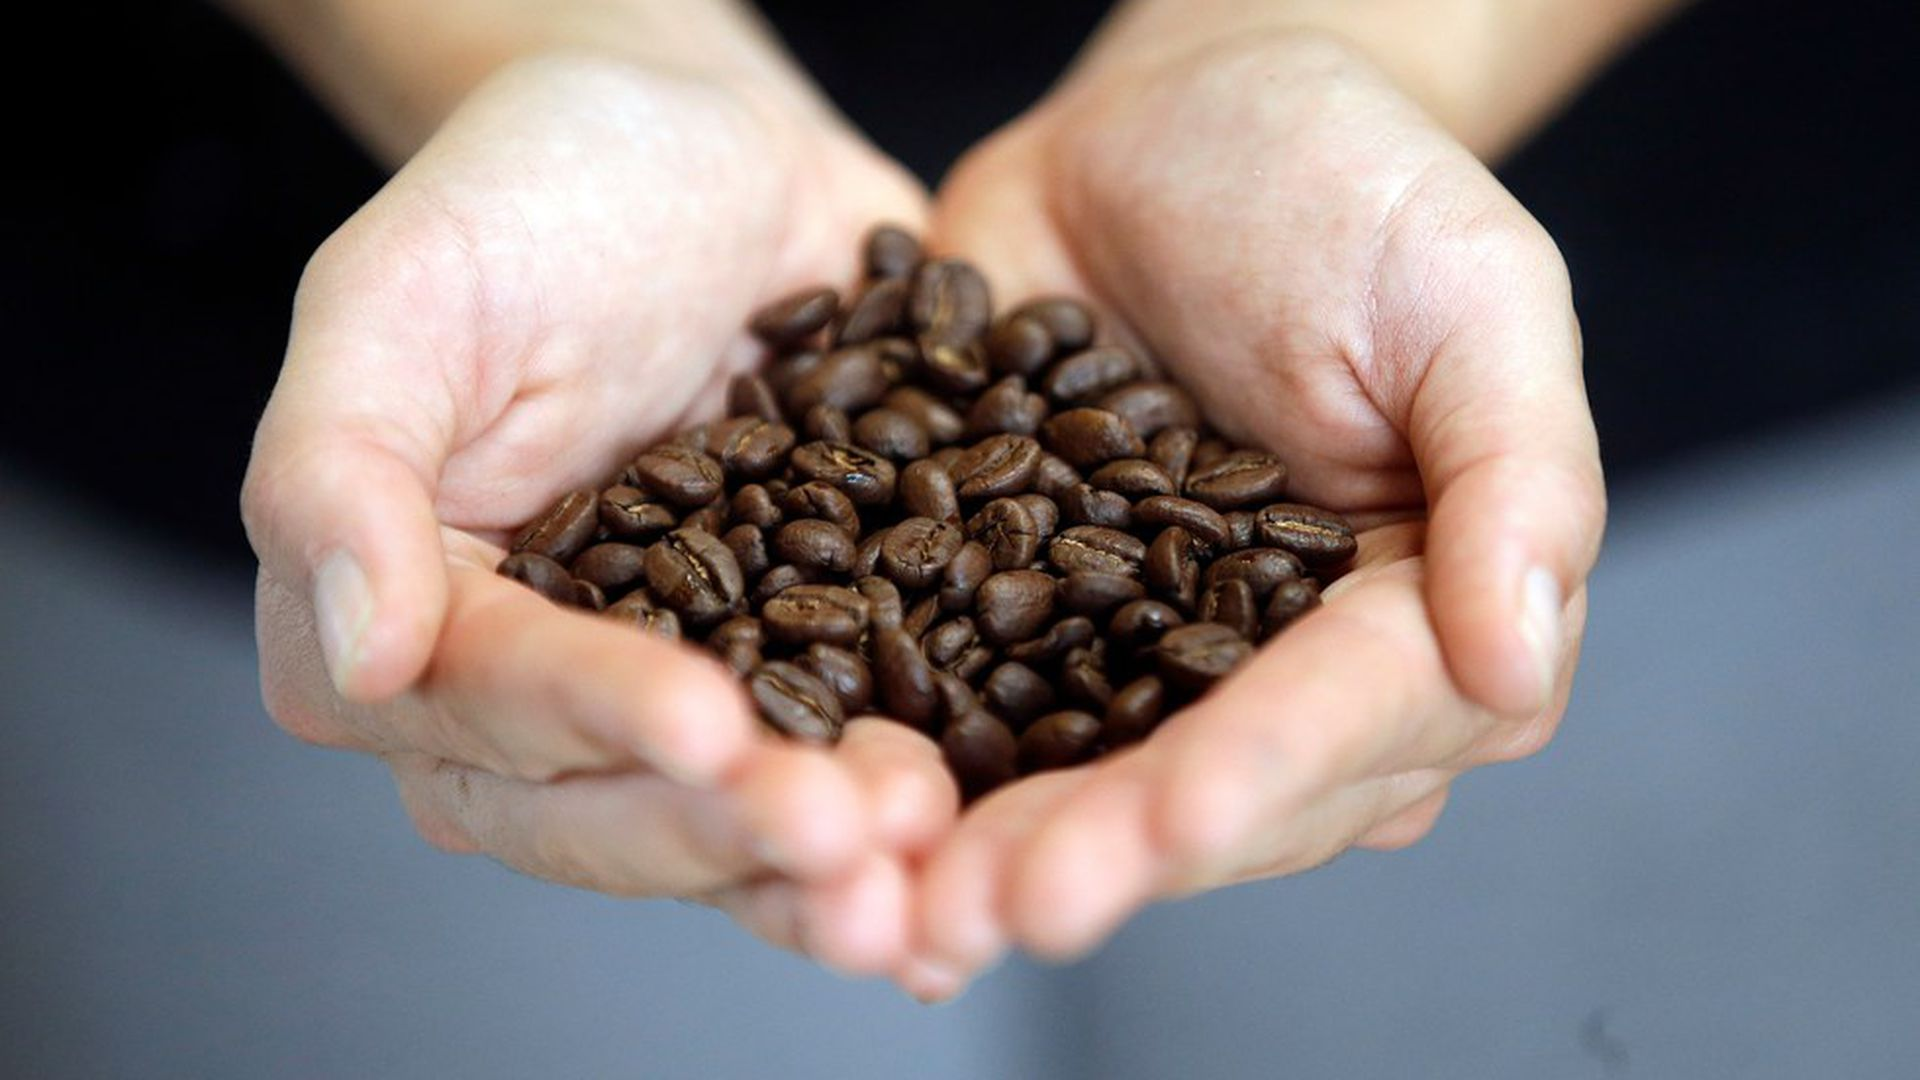 The high-end trend coming for coffee